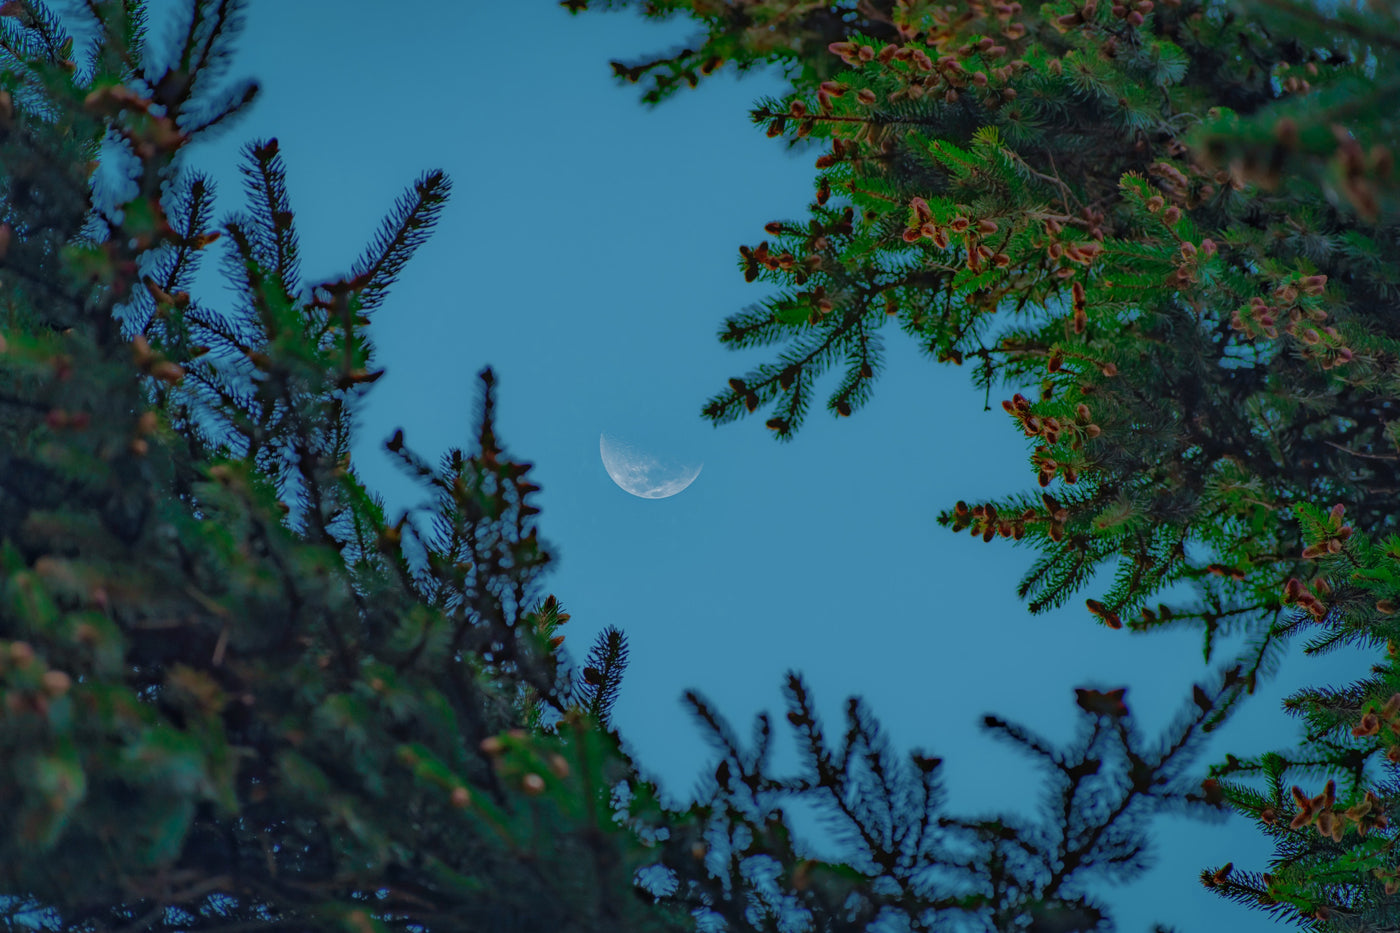 Gardening with the Moon: guest blog post by Erin Duffy Osswald